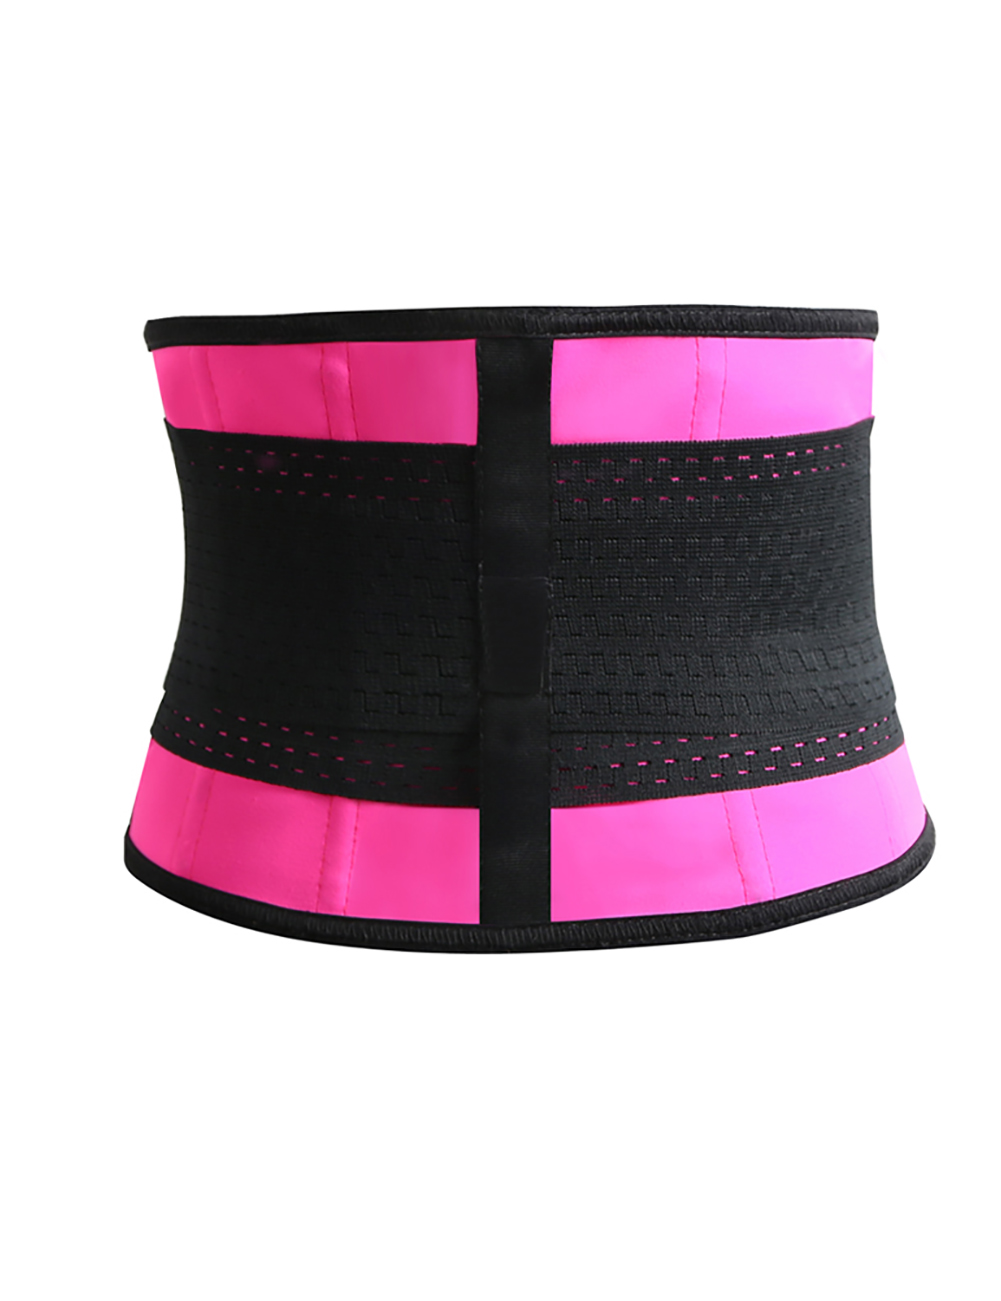 //cdn.affectcloud.com/hexinfashion/upload/imgs/Shaper/Waist_Belt/LB4898/LB4898-201911065dc29ecd75b79.jpg